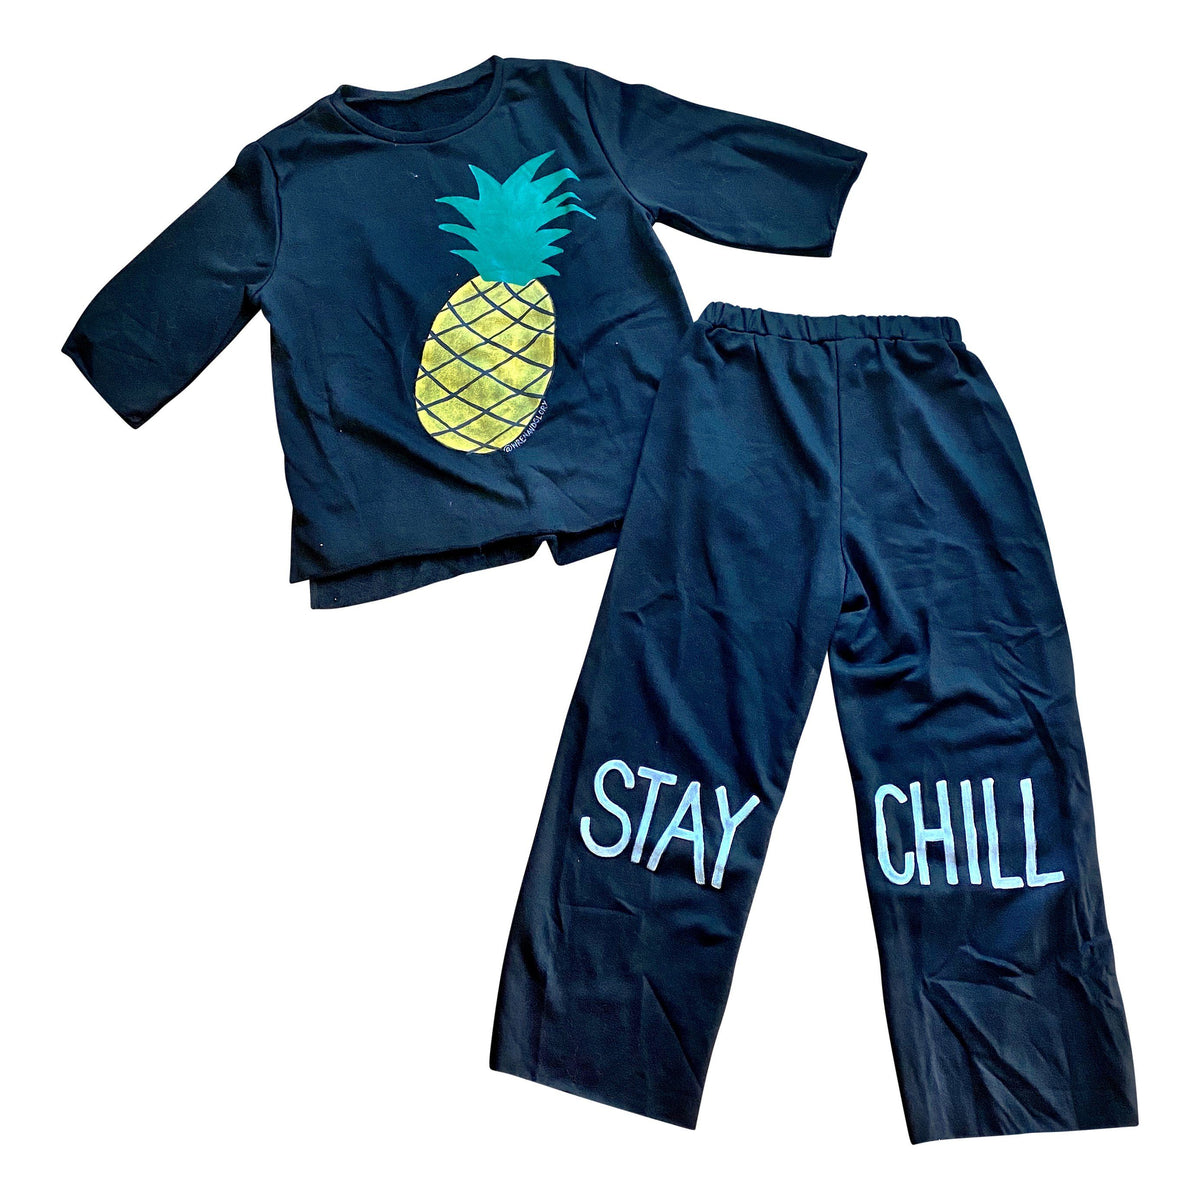 The perfect sweatshirt & sweatpant loungewear set. Large pineapple painted on front of sweatshirt, with STAY CHILL painted on the bottom half of each leg, in white Signed @wrenandglory on both top and bottom.